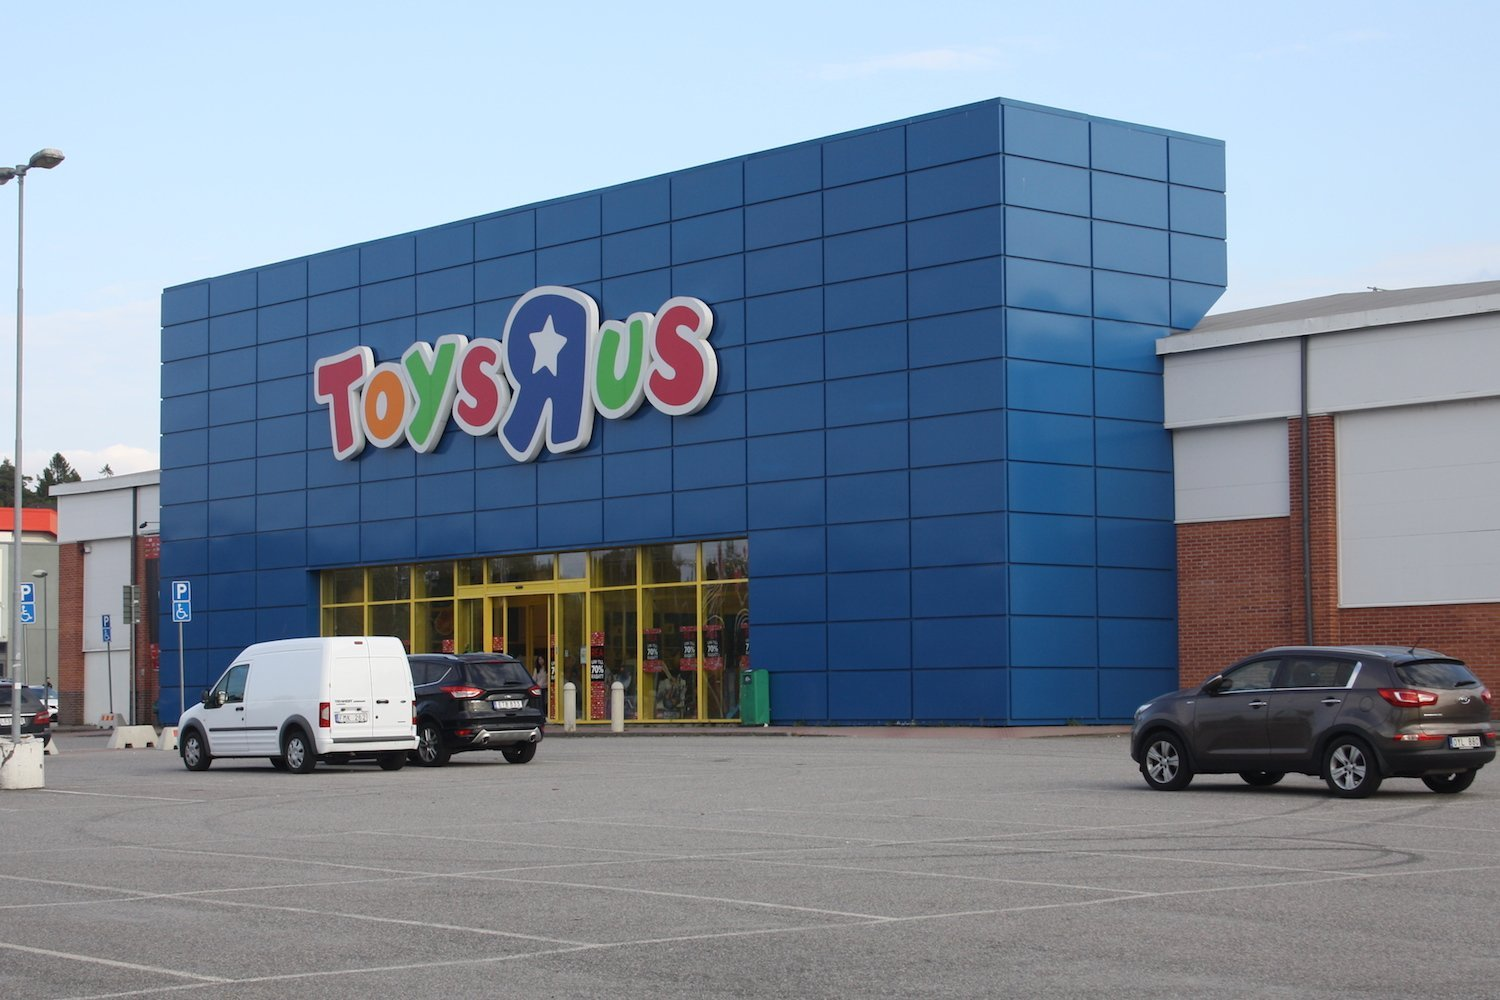 What Toys 'R' Us Should Have Done to Stay in Business